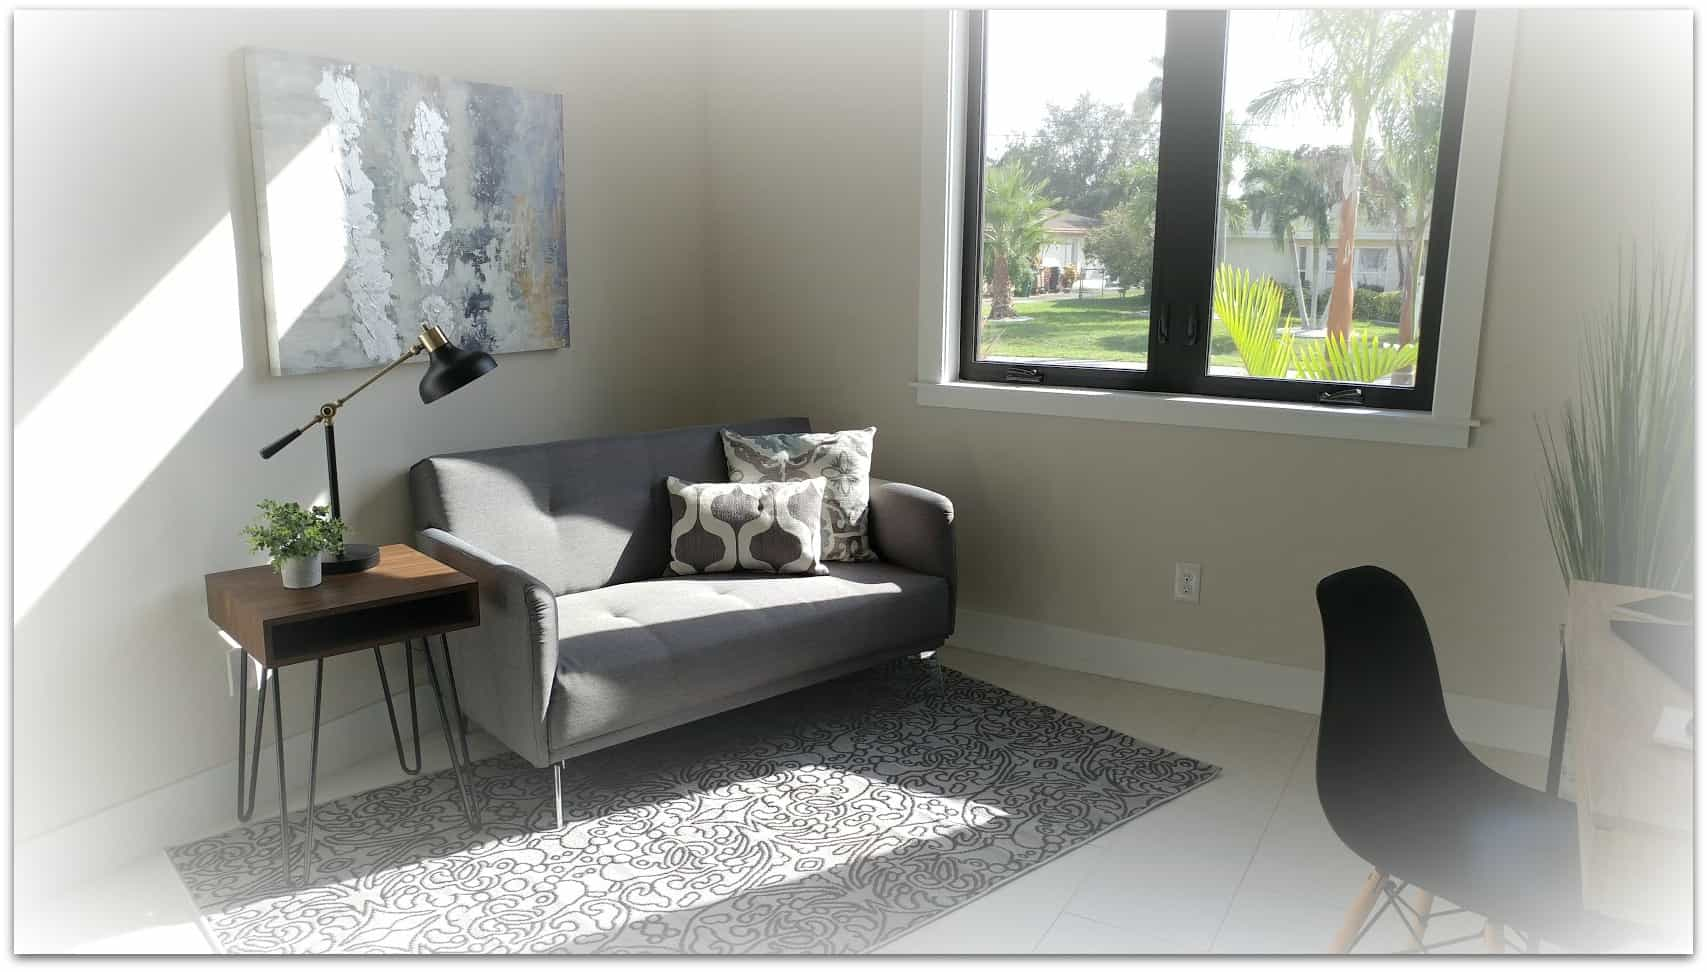 Clean and Simple: How Minimalism Works in the Home